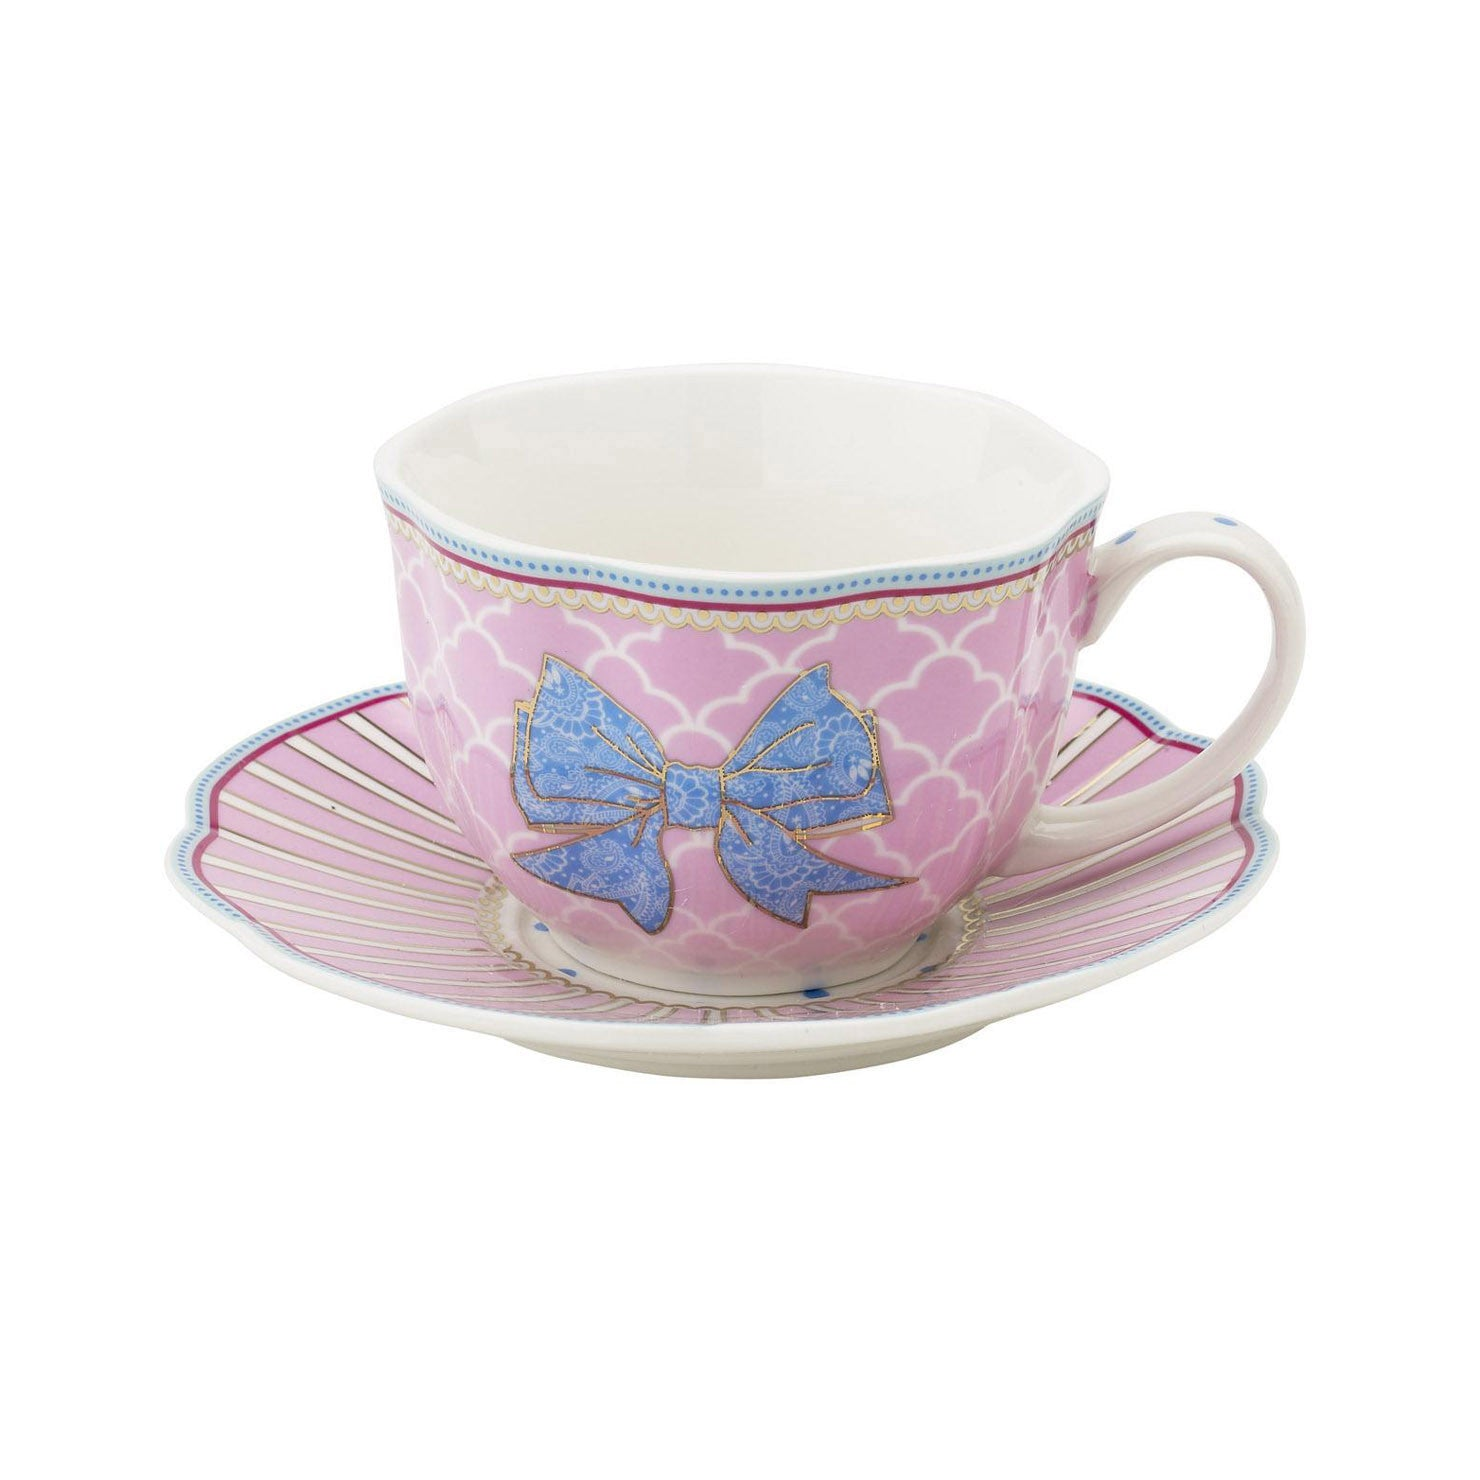 Lisbeth Dahl | Set of 2 Tea Bowie Porcelain Cups